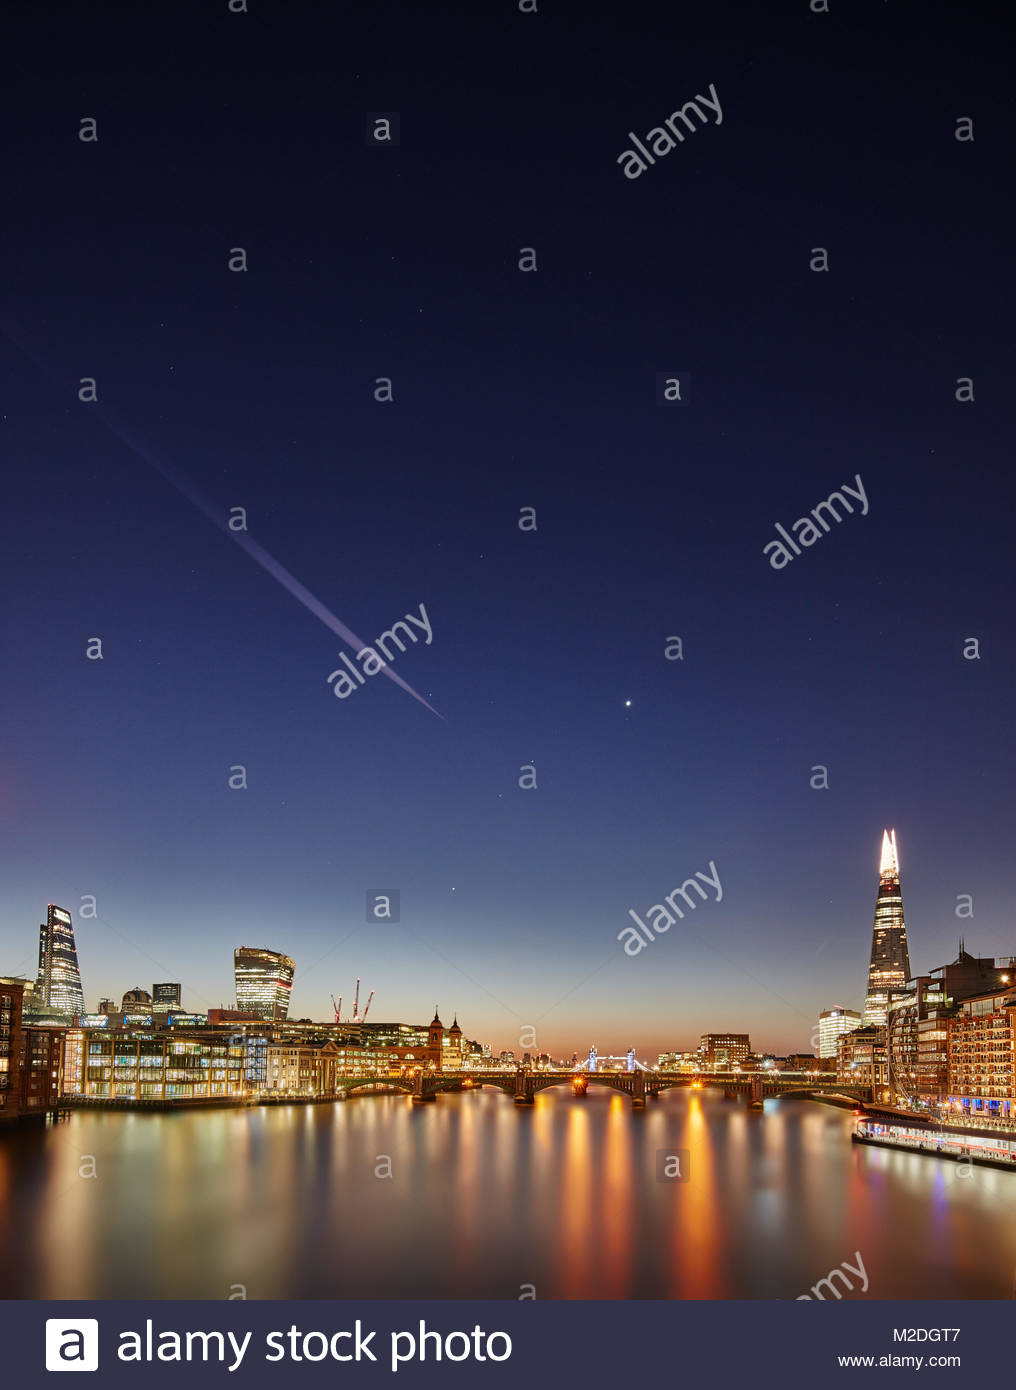 Stars in the sky dating london